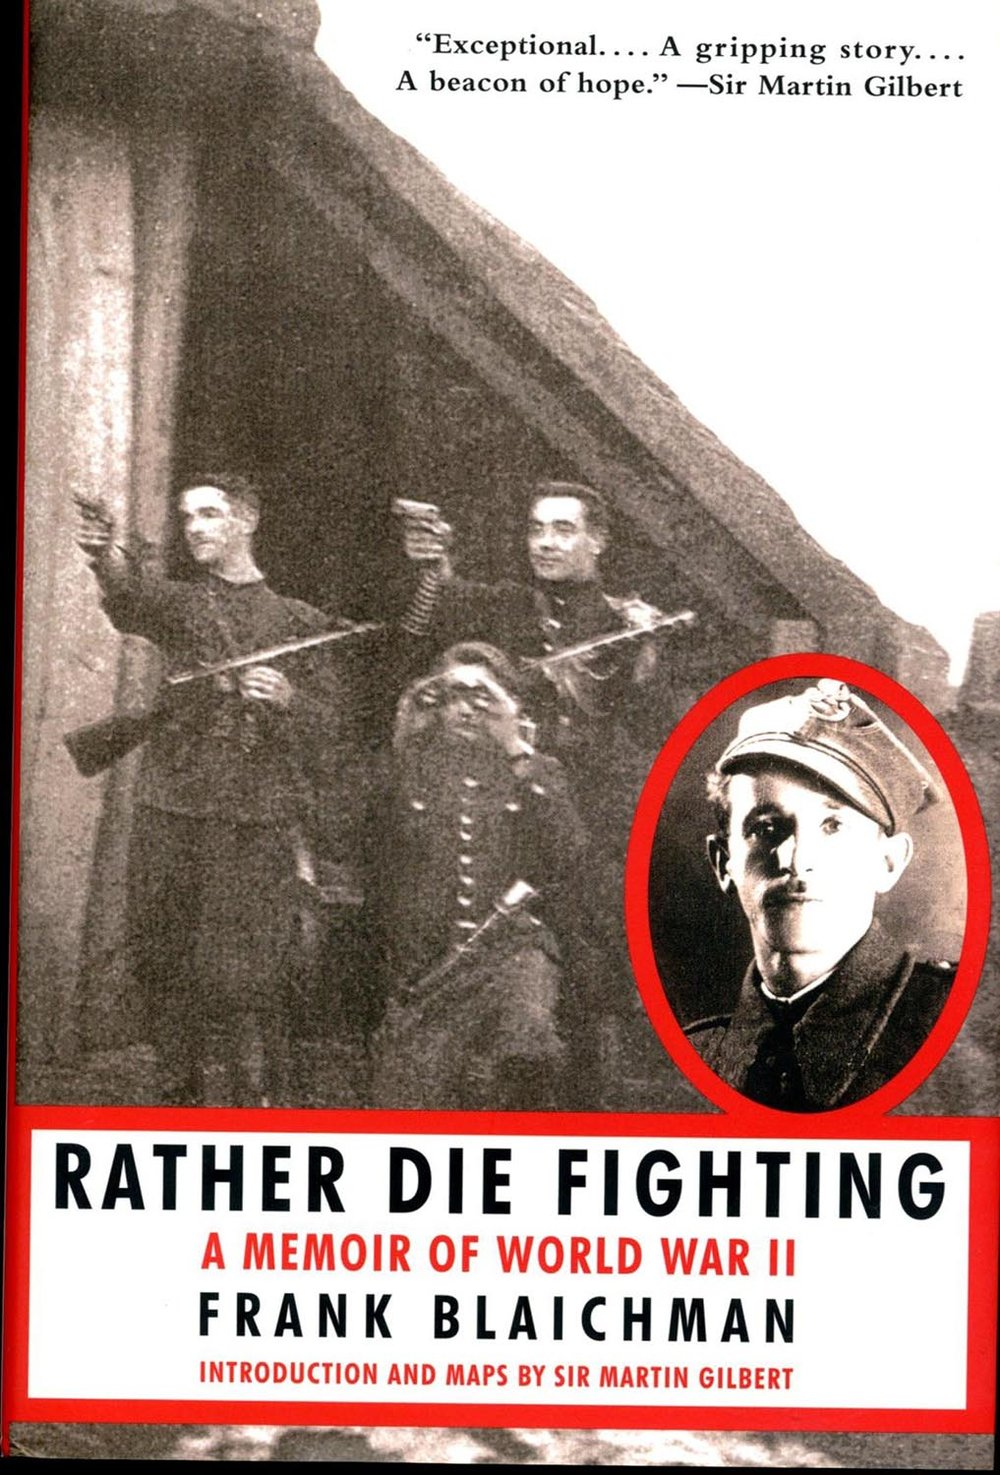 Rather Die Fighting.jpg